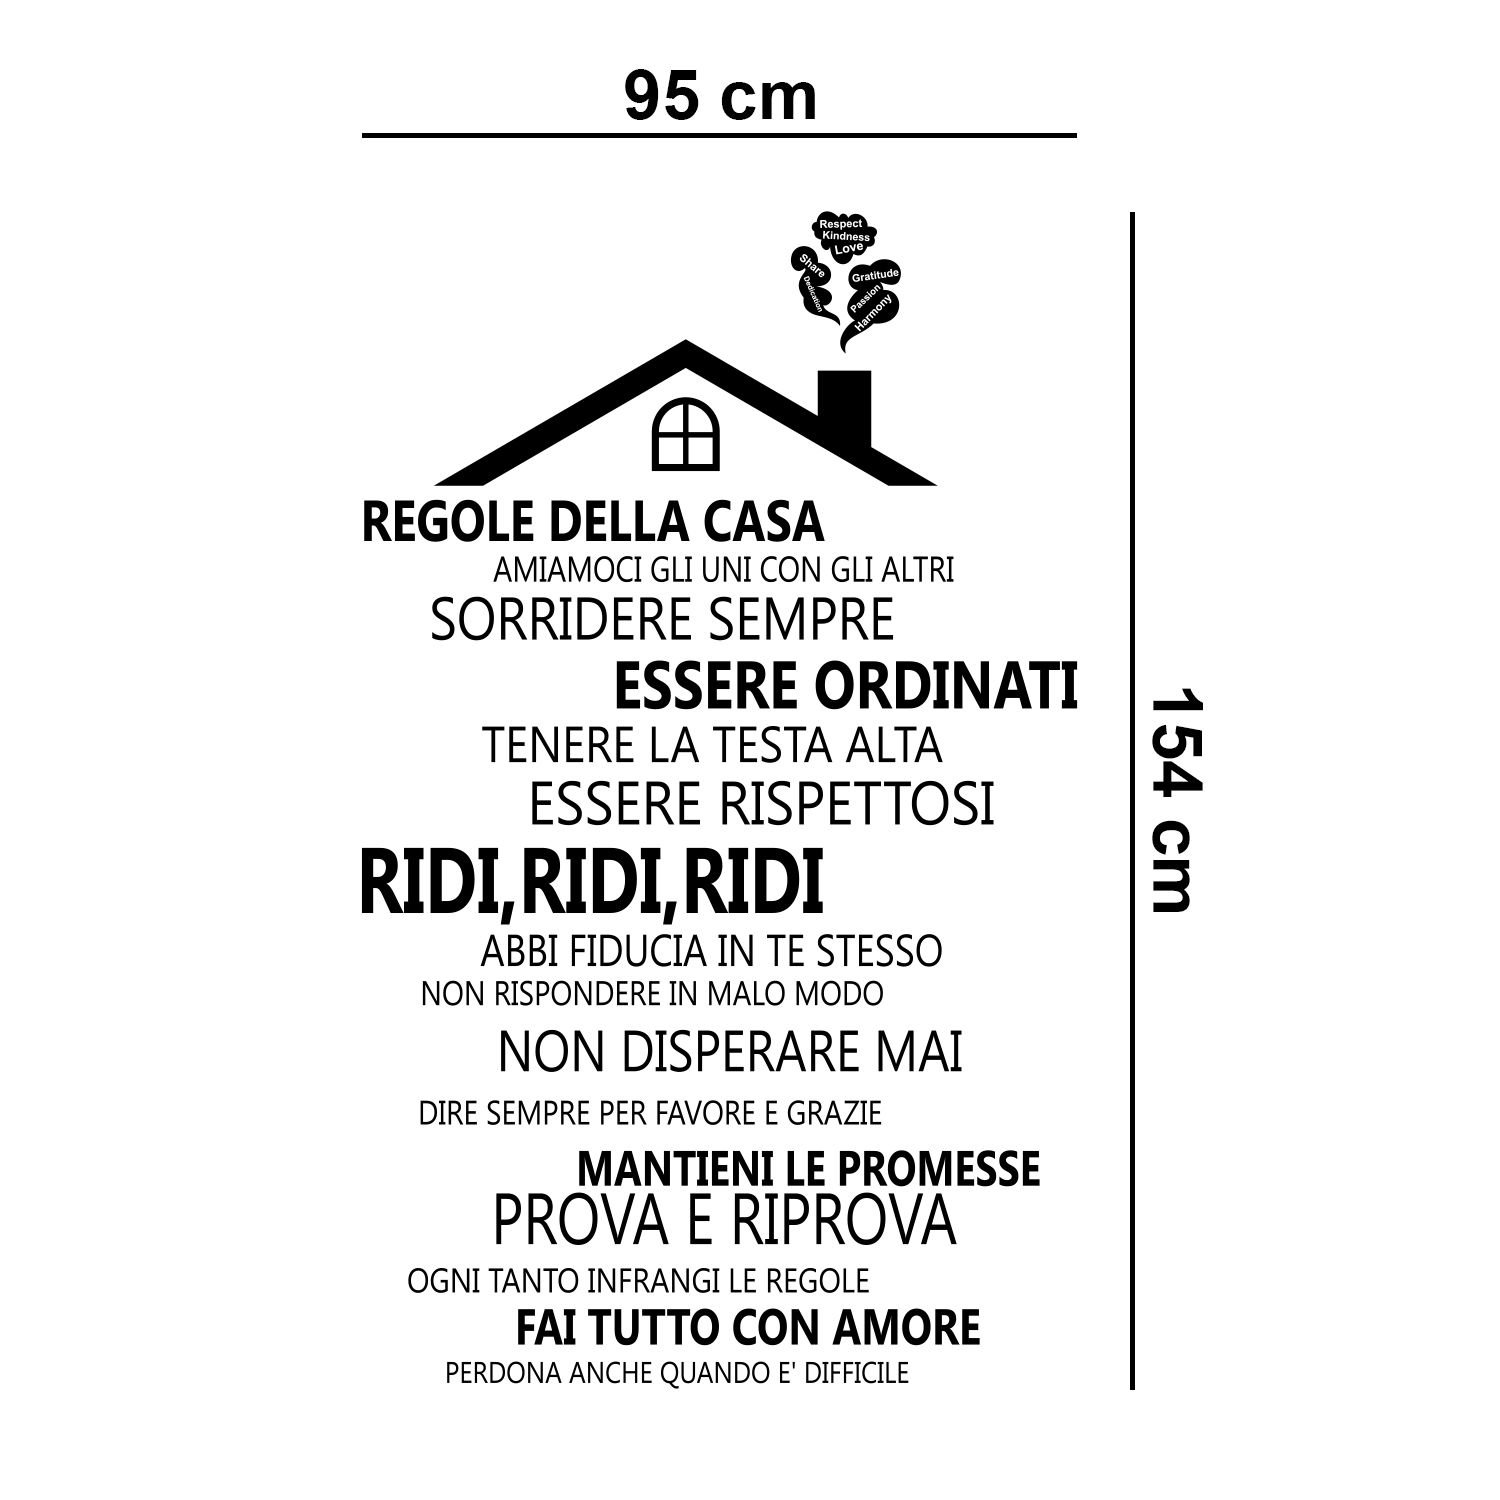 Wall Sticker Decal Rooftop House Rules with Italian and Swarovski Crystals